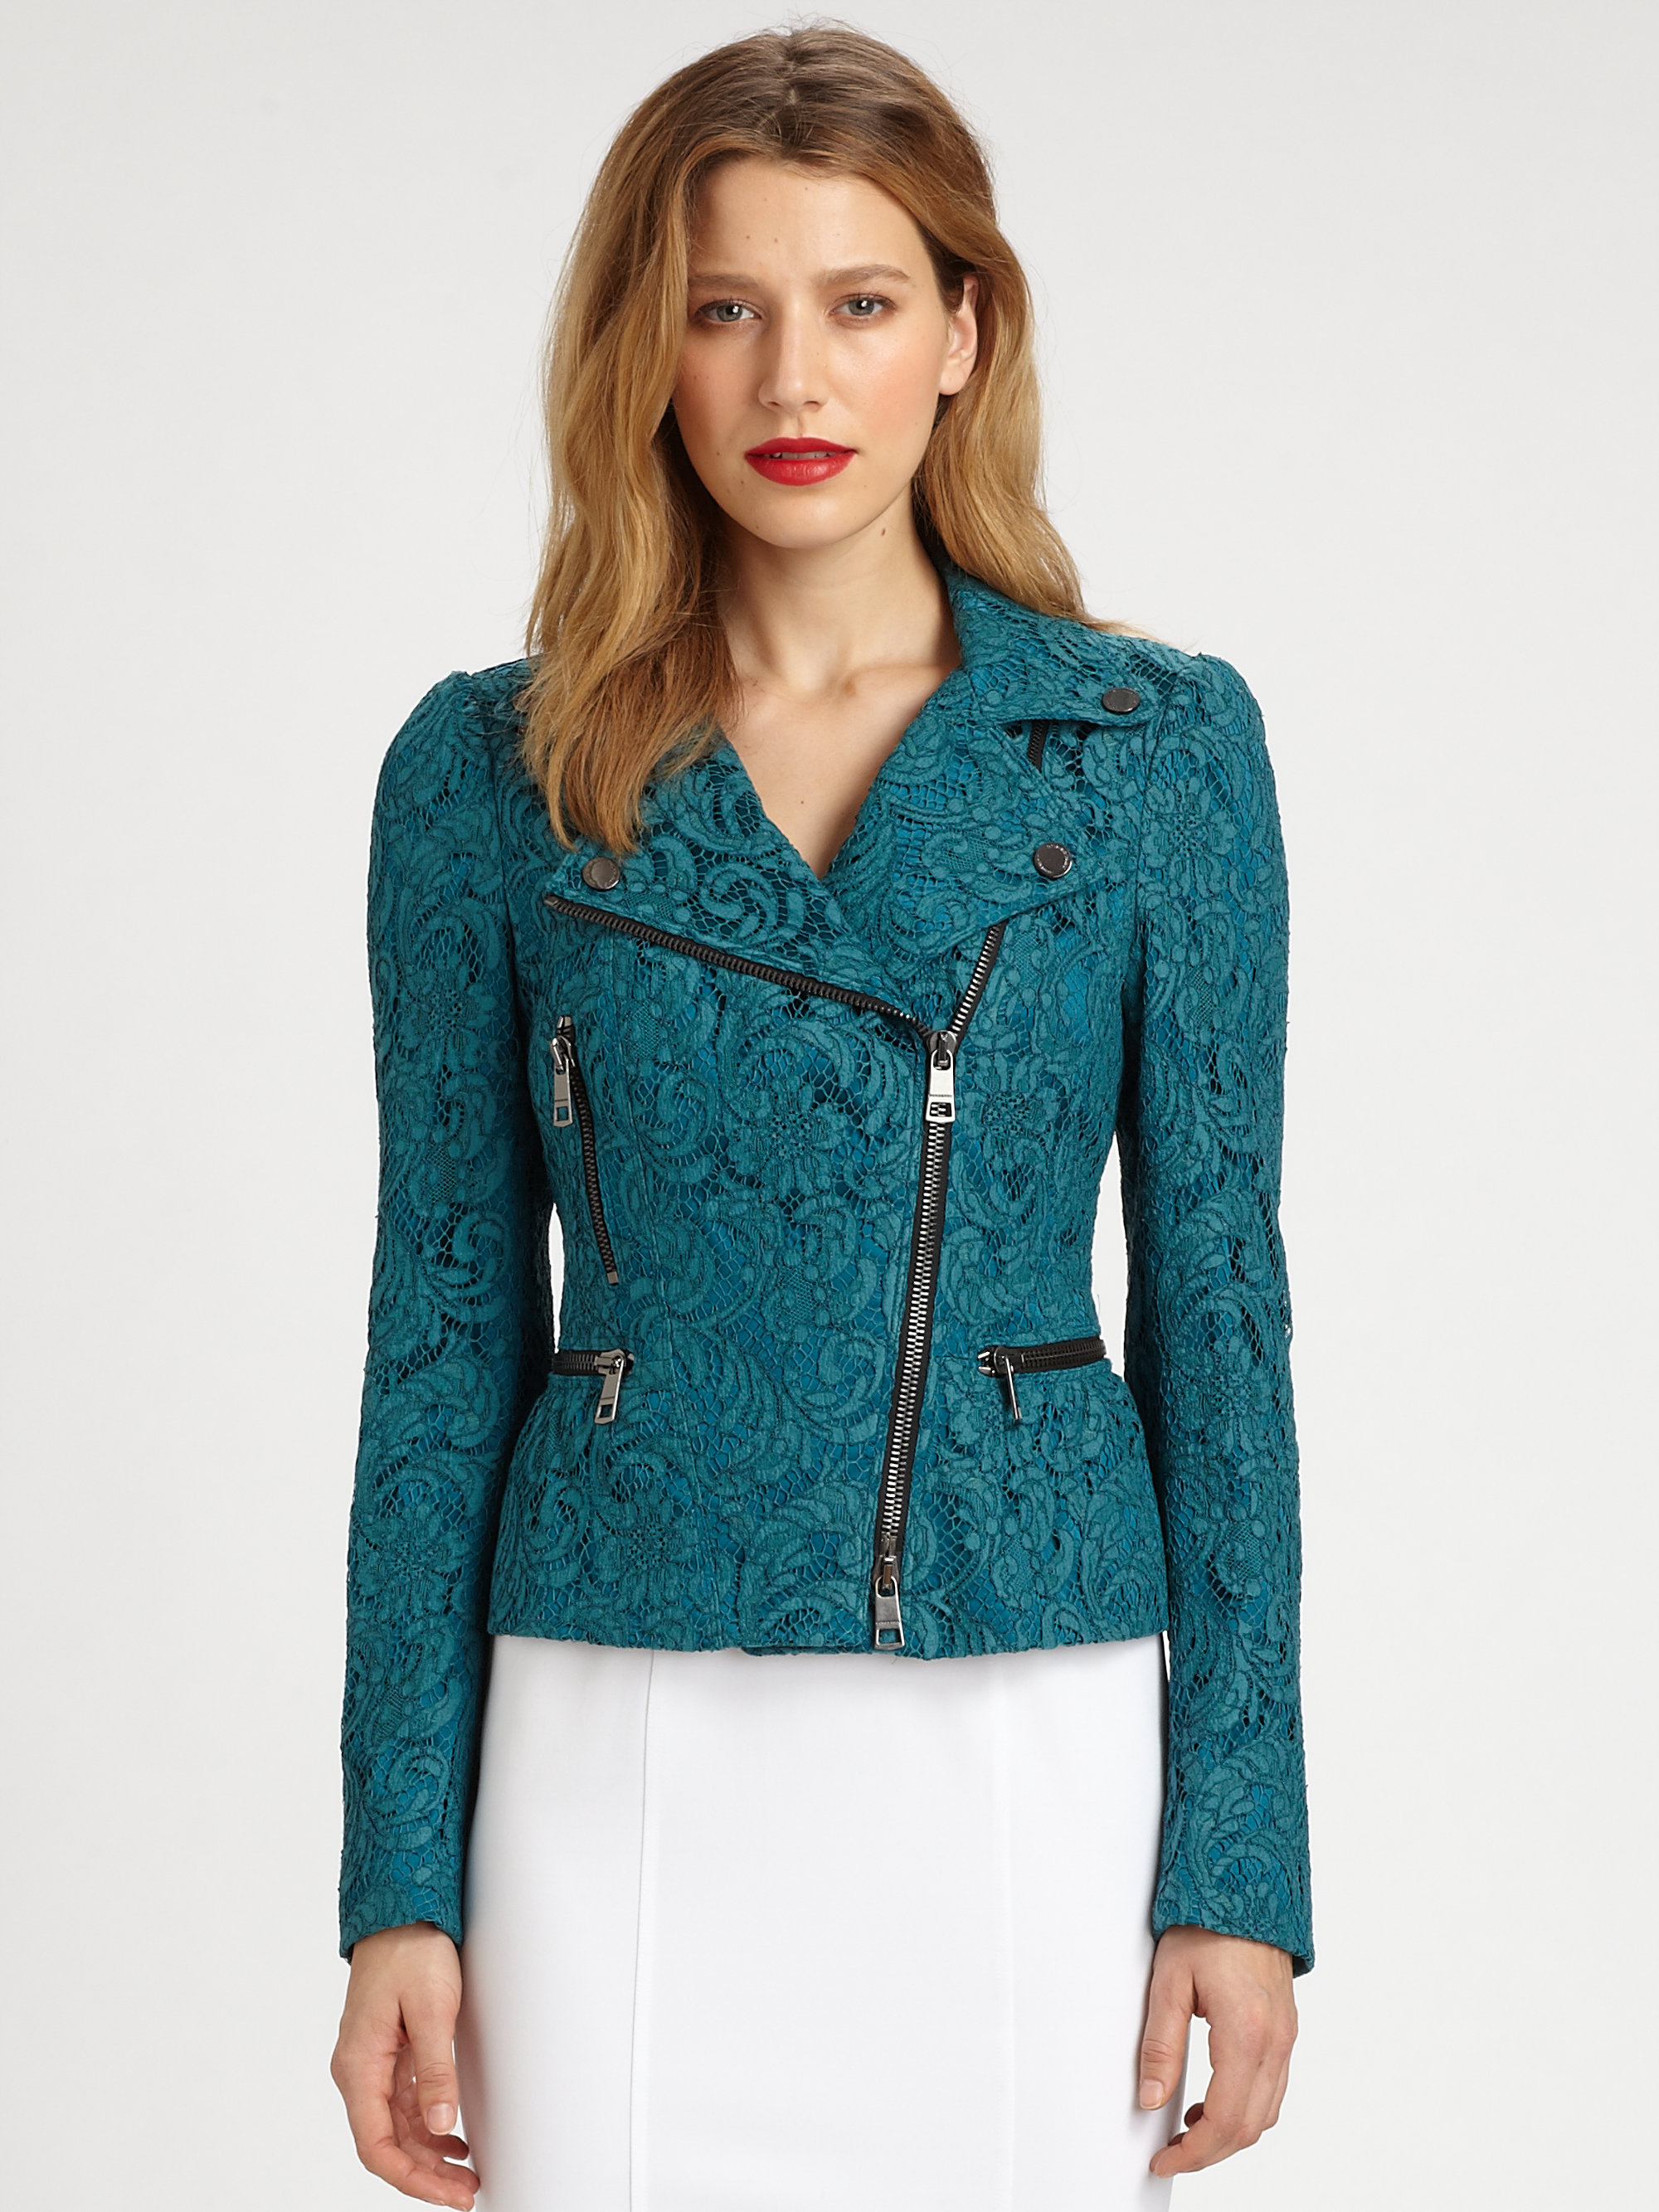 Wedding Lace Jacket burberry lace jacket in blue lyst gallery